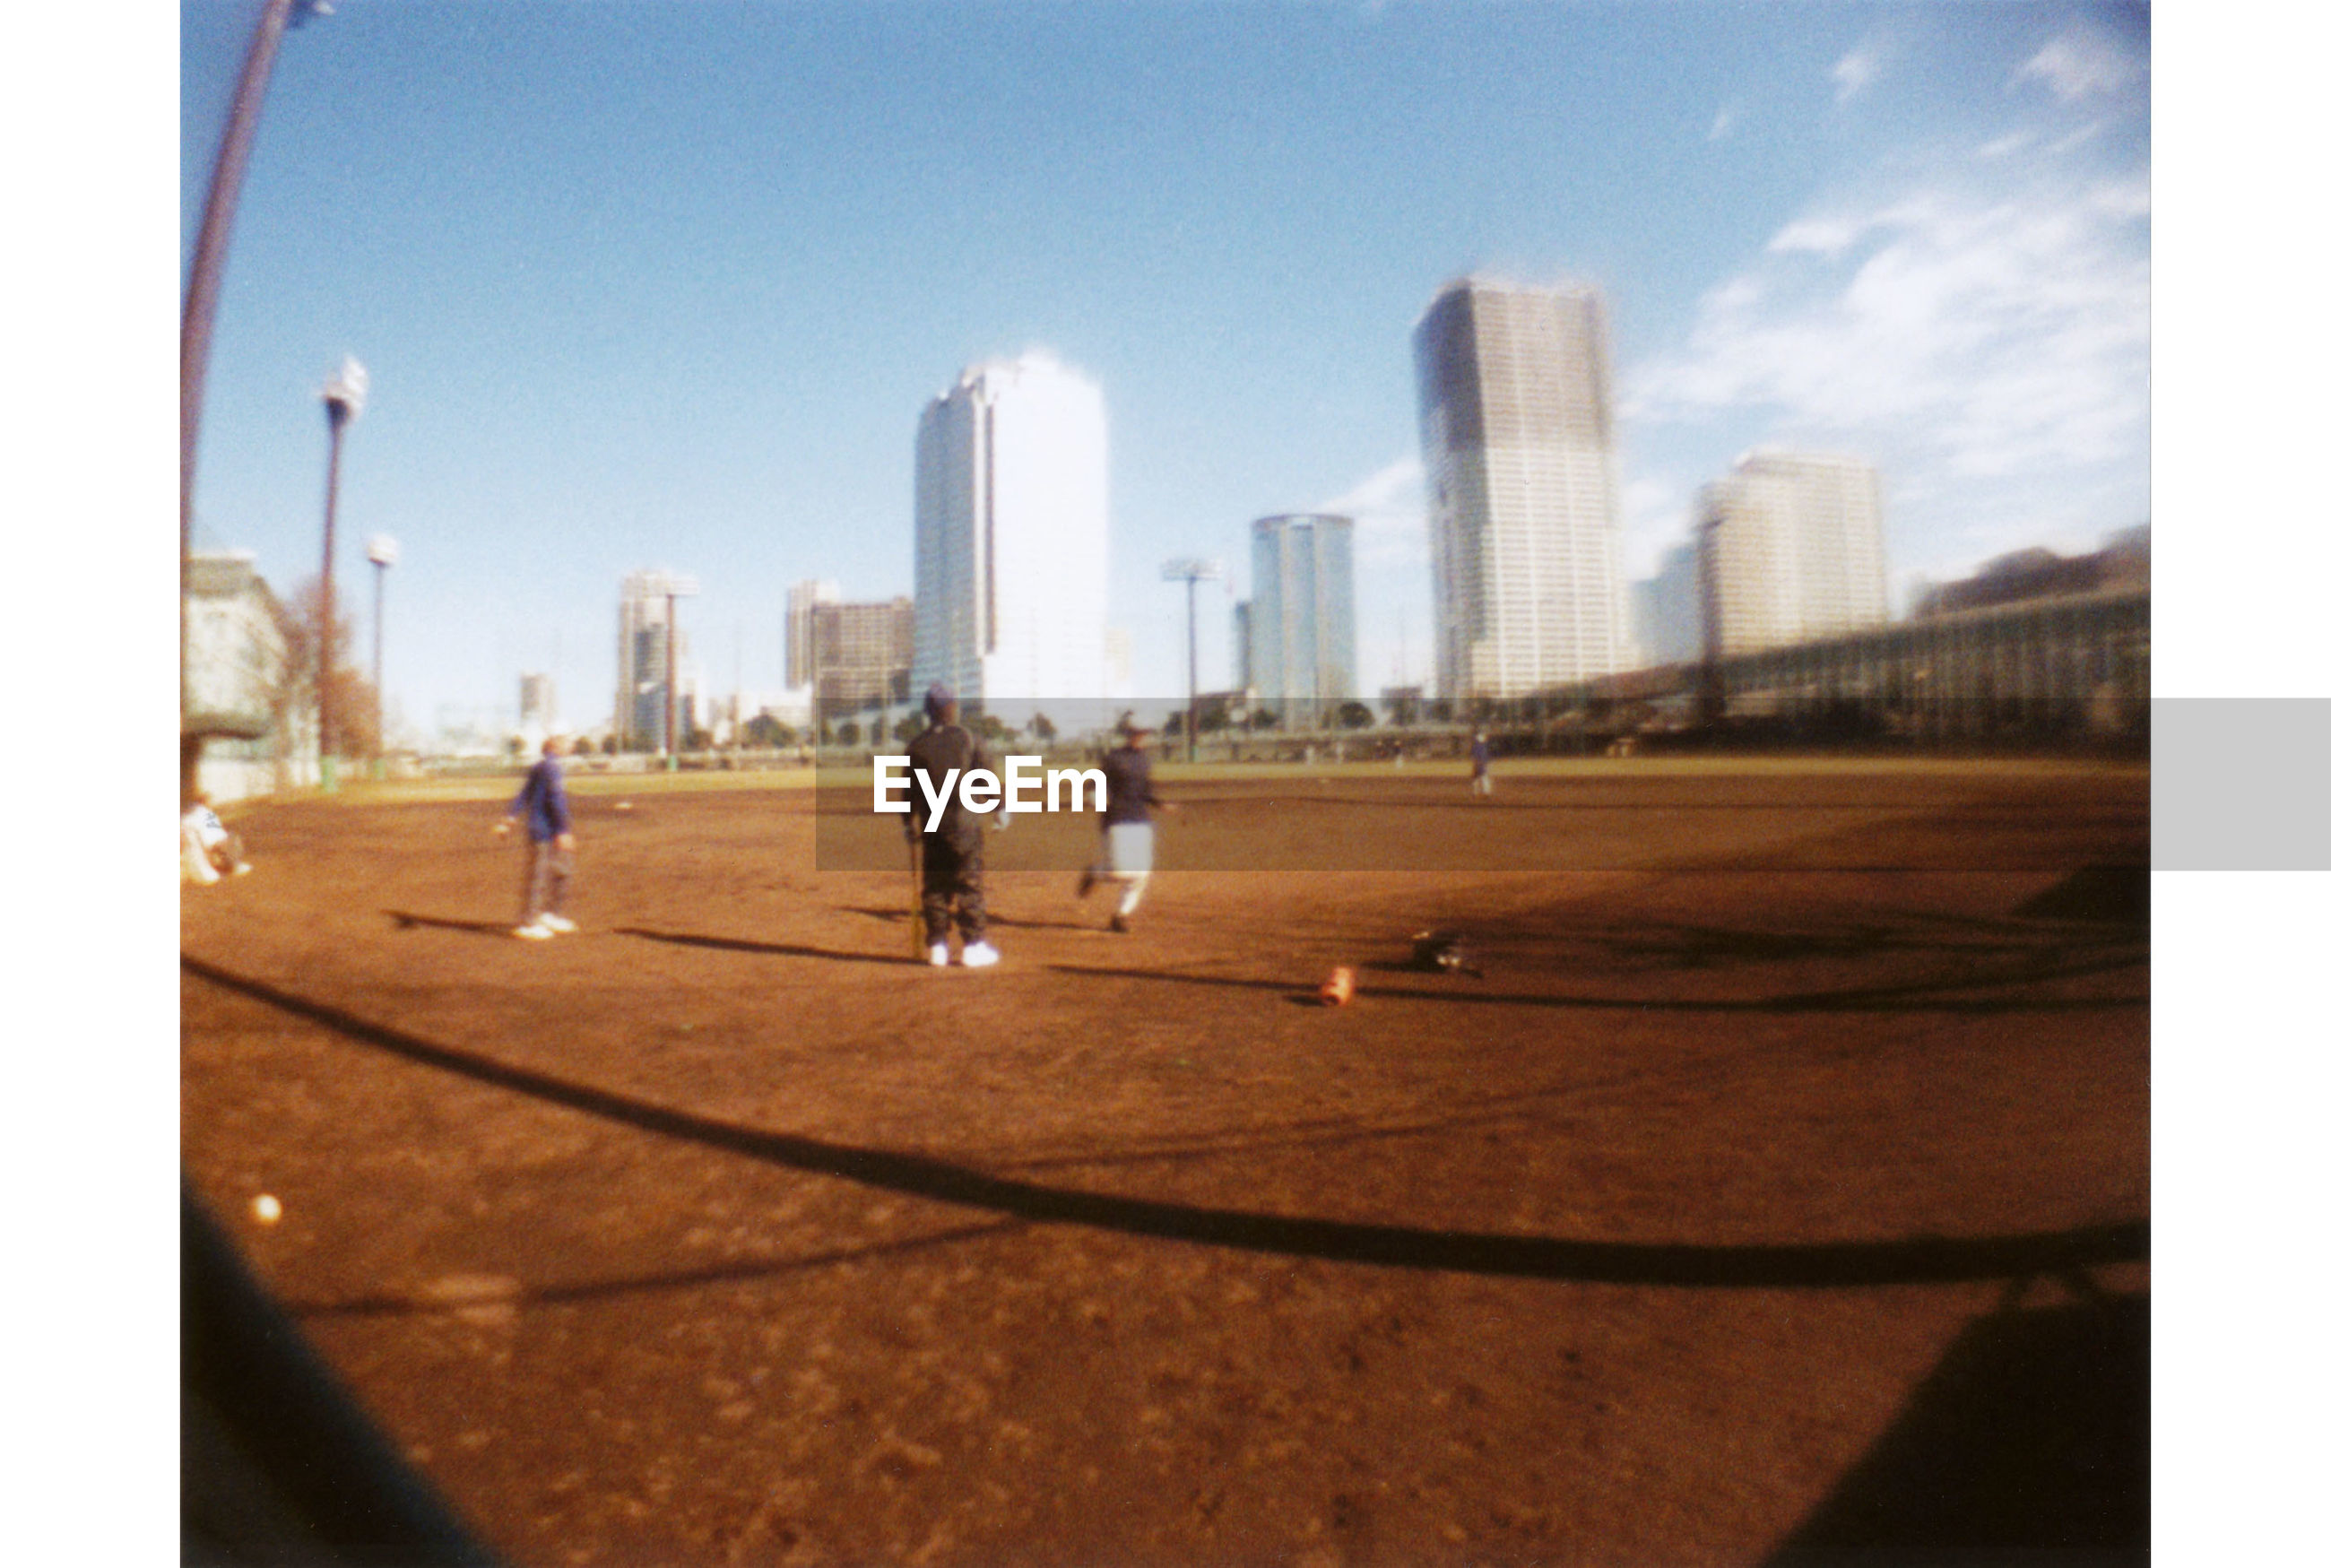 People playing on sports field against skyscrapers